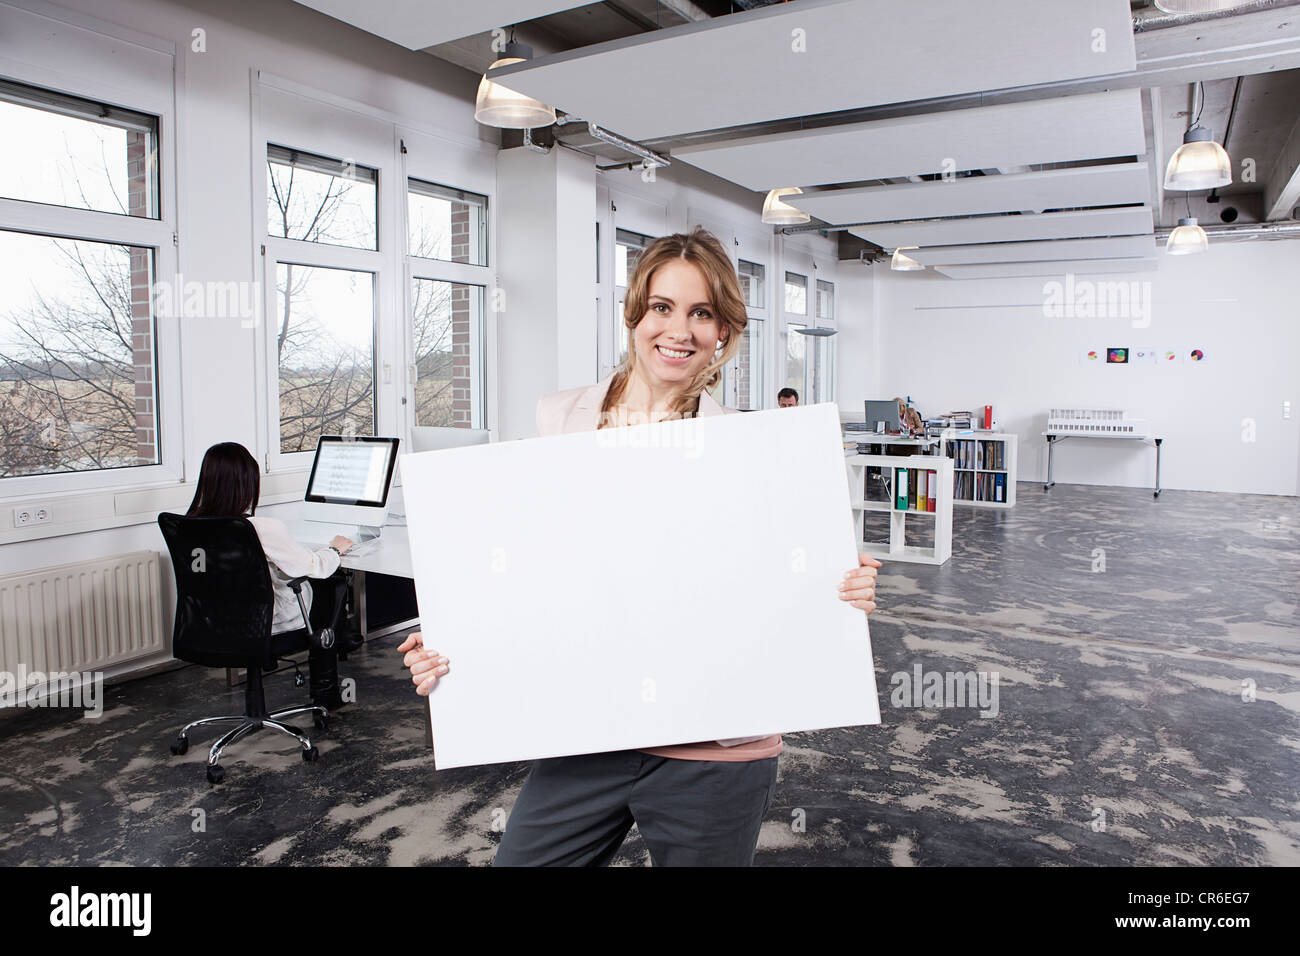 Germany, Bavaria, Munich, Woman holding placard, colleagues working in background - Stock Image